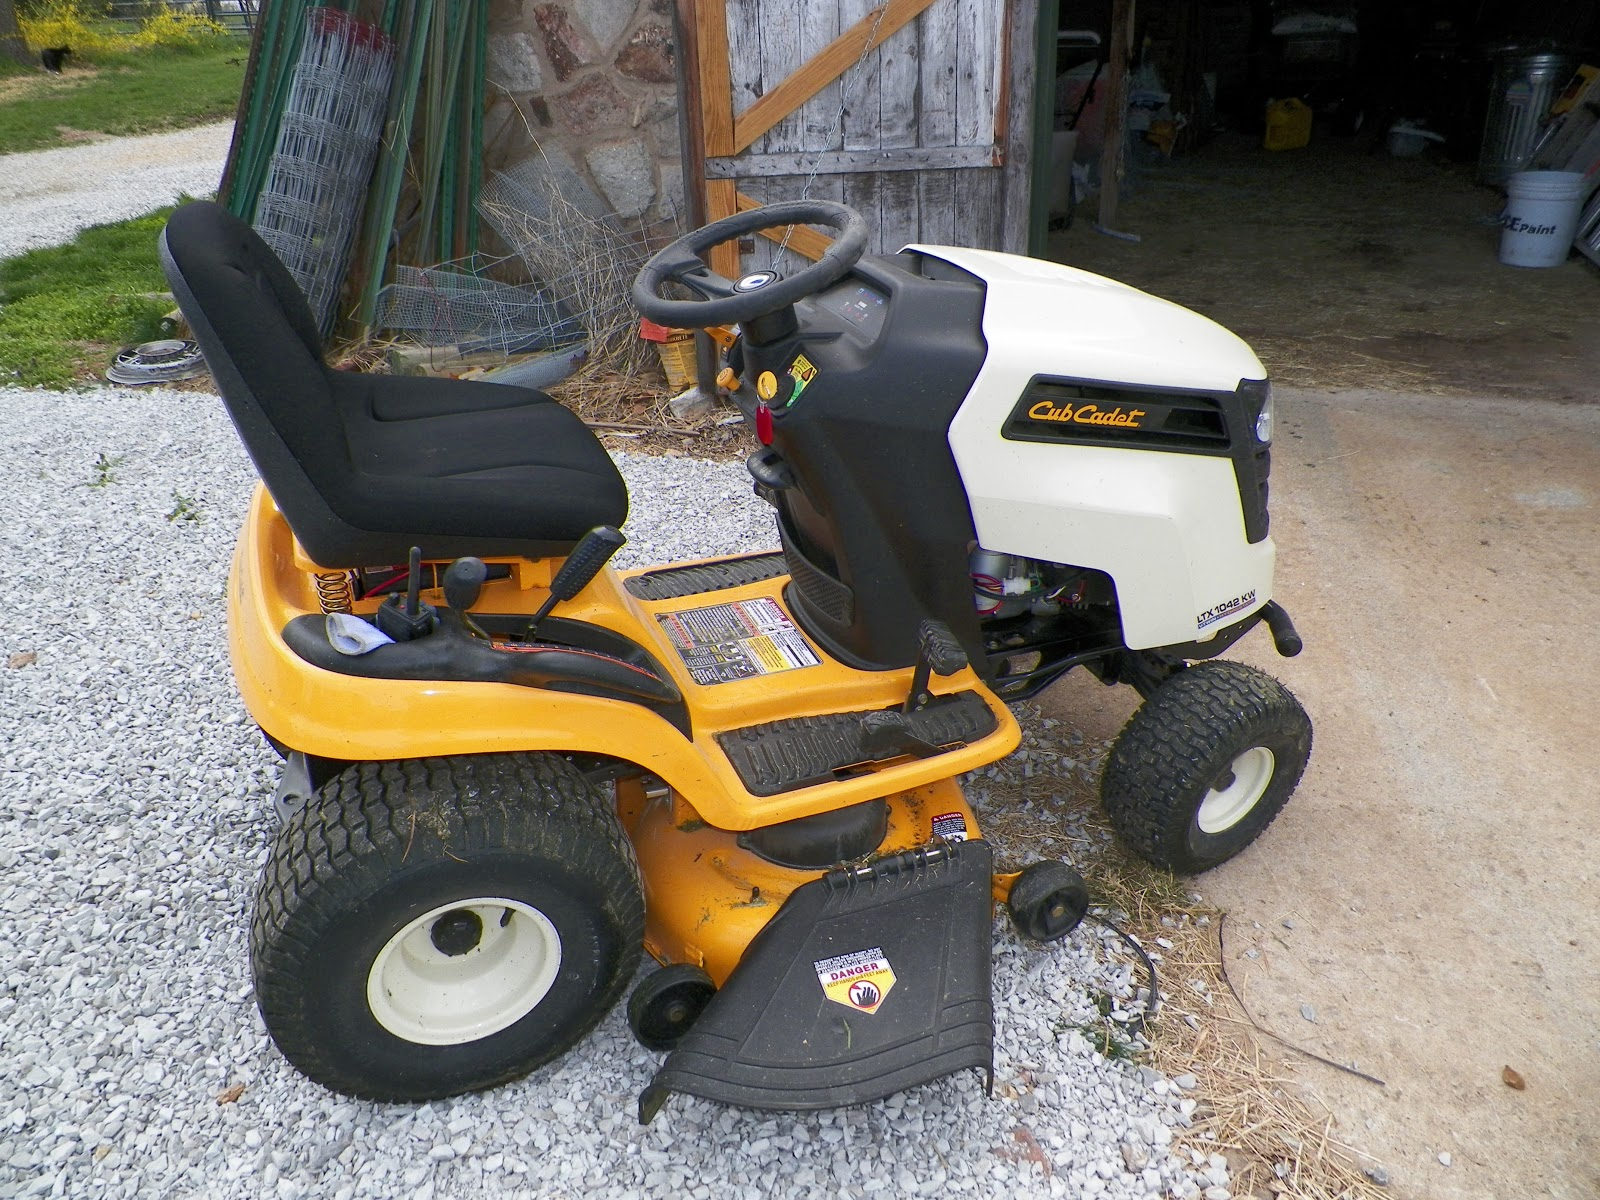 ... Cub Cadet (LTX 1042 KW) because of the features, the engine and the 3  year warranty. Plus, it has a manual deck lift and manual PTO...less to go  wrong.